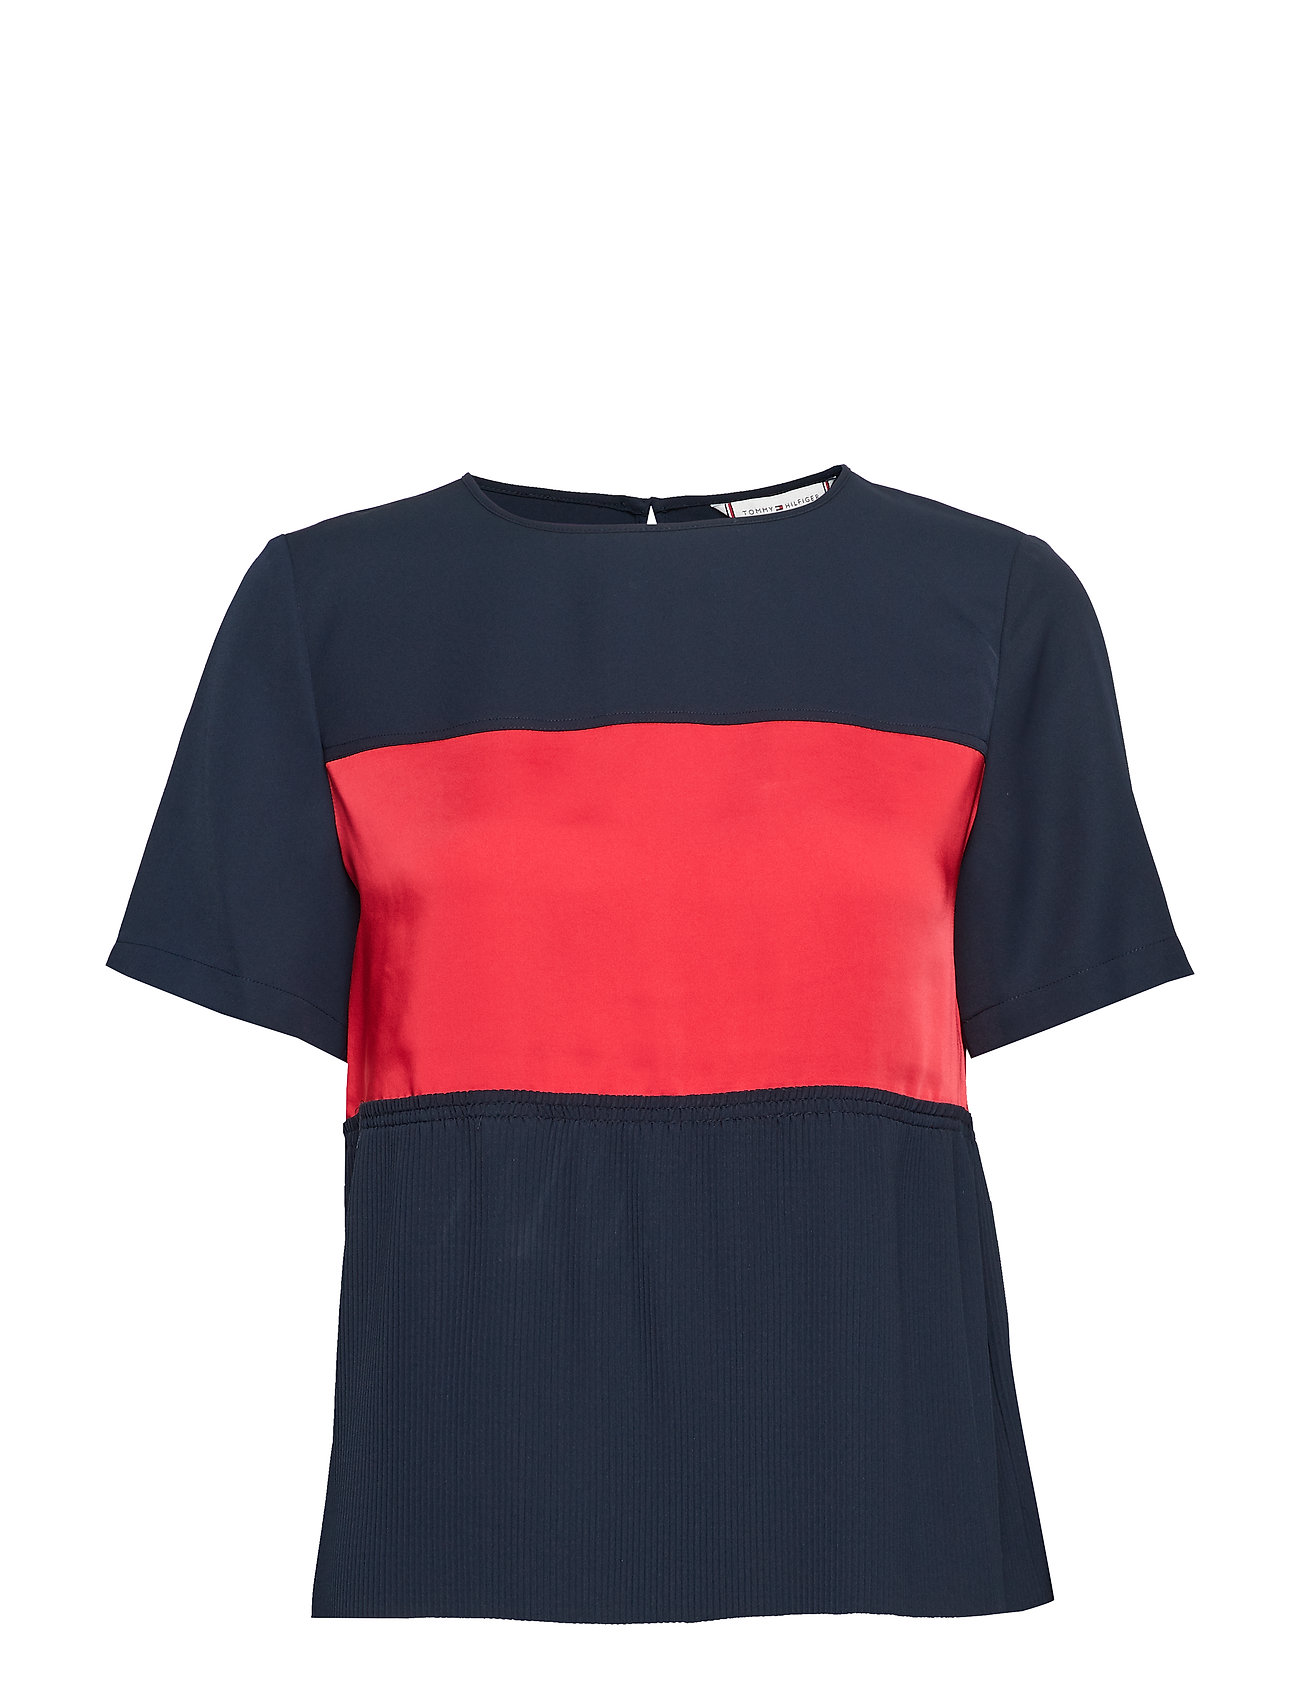 Tommy Hilfiger FRANCES TOP SS - MIDNIGHT